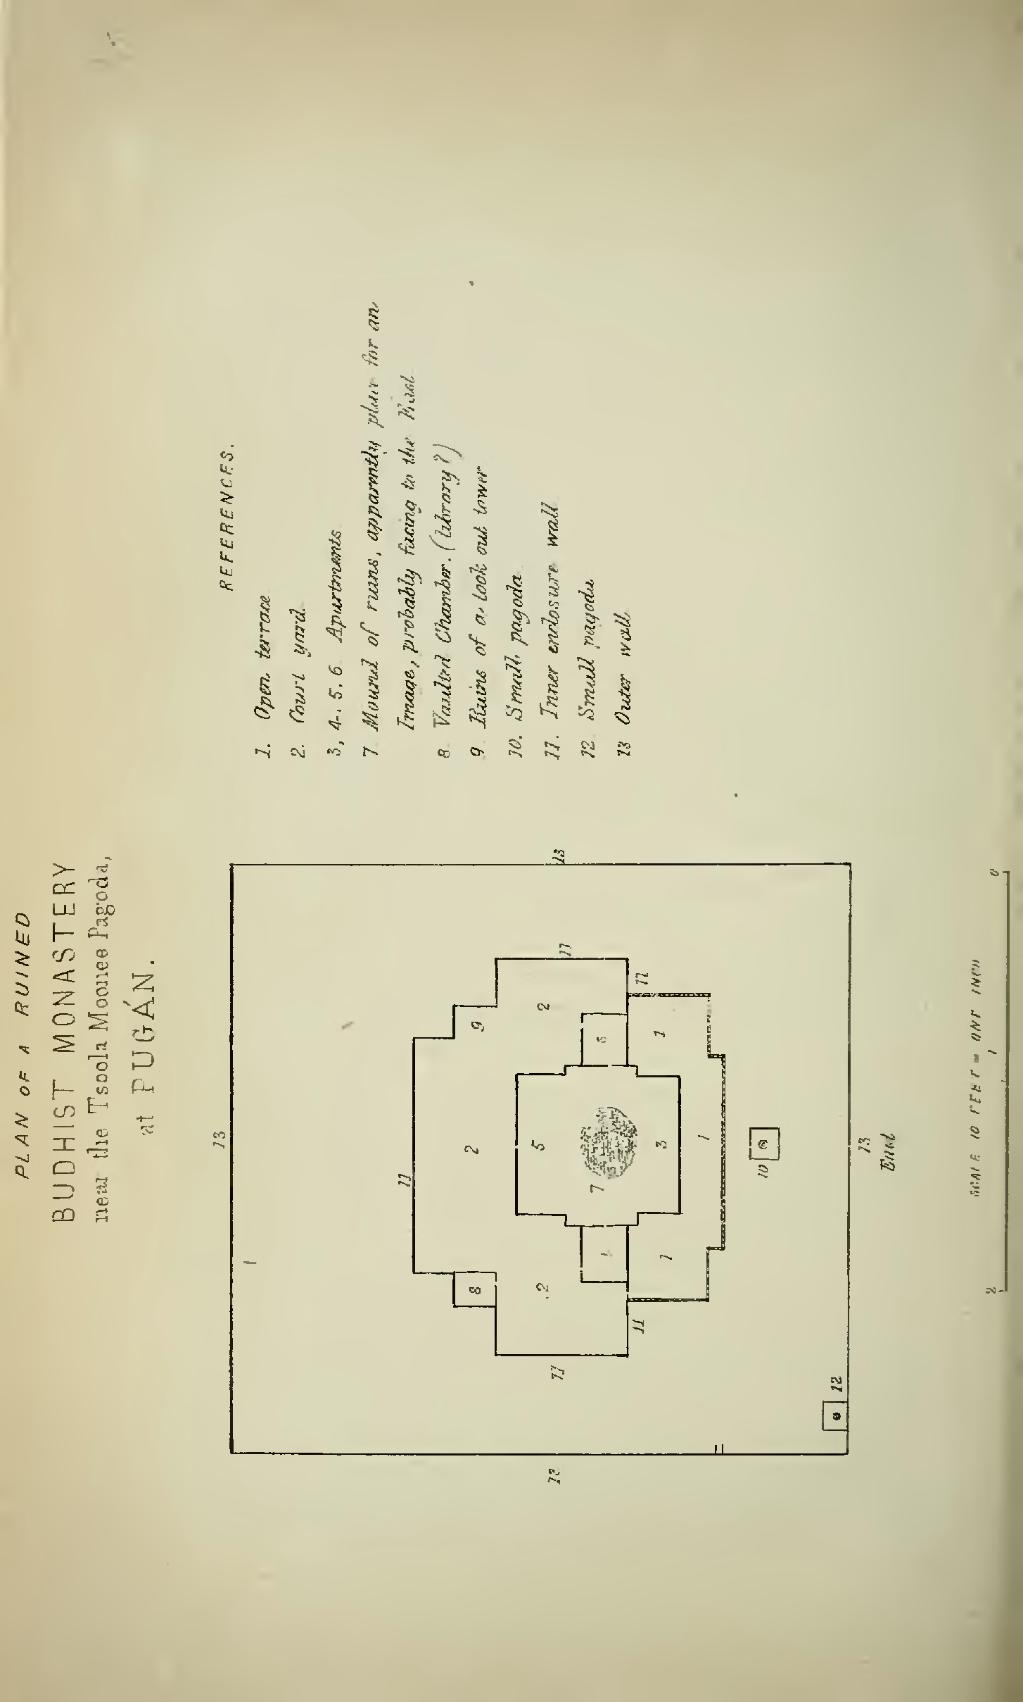 Pagejournal Of The Asiatic Society Bengal Vol 29djvu 380 Wall Schematic Engineering Diagram Wikisource Free Online Library